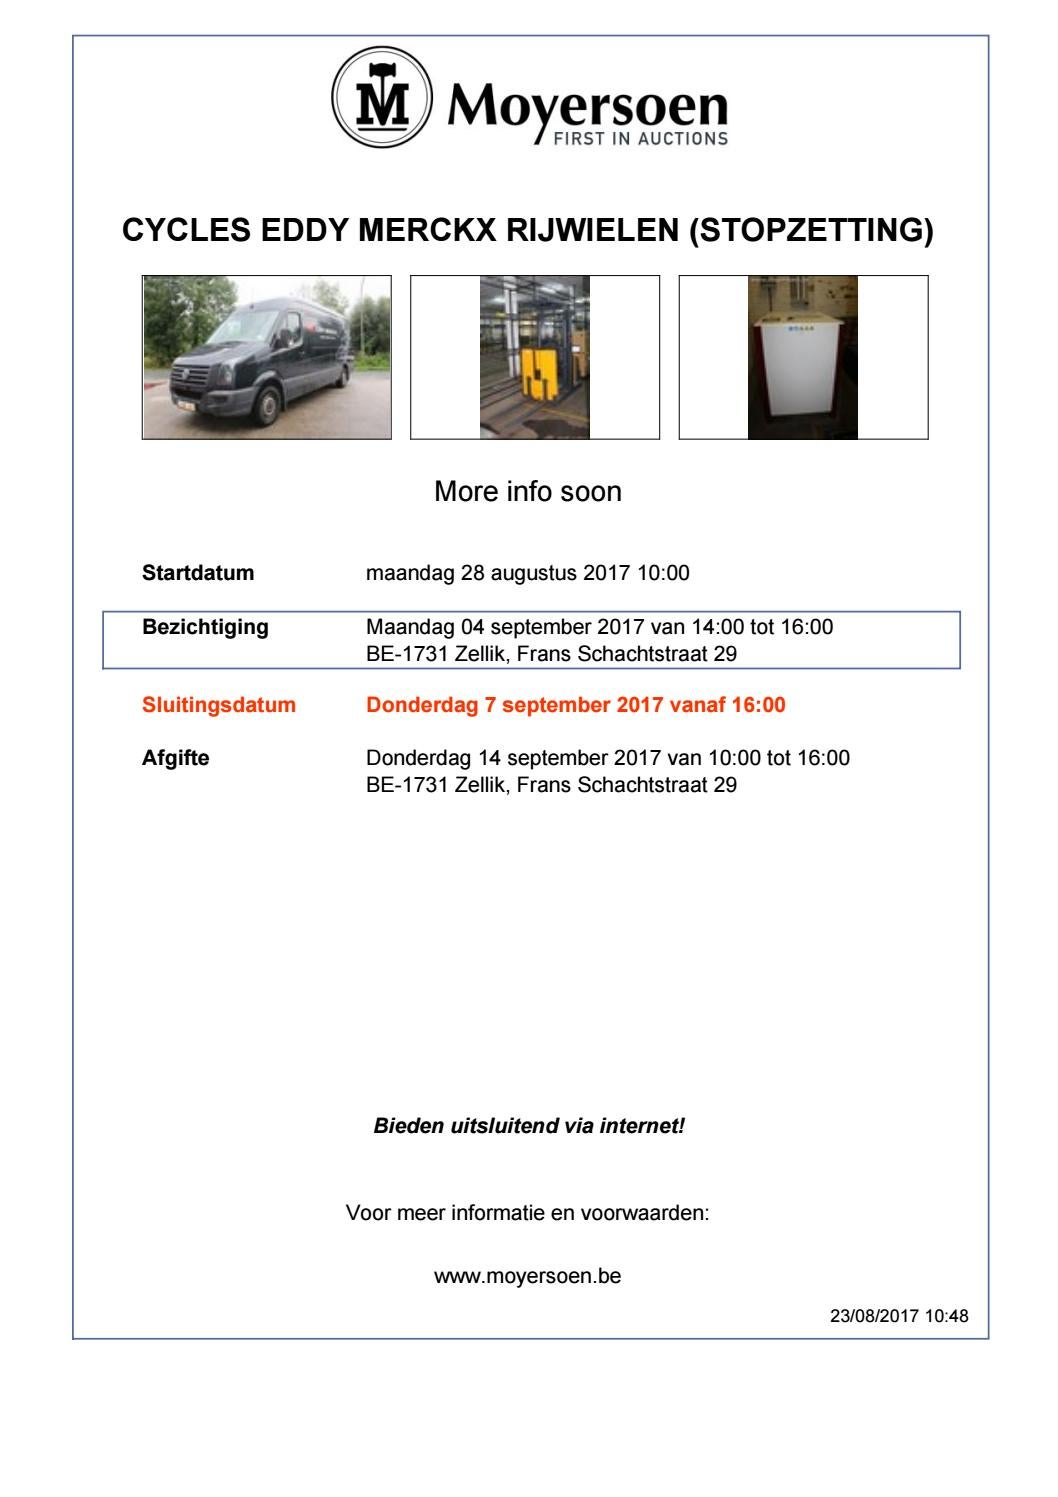 Zuilventilator Gamma Cycles Eddy Merckx Rijwielen Stopzetting By Moyersoen Issuu